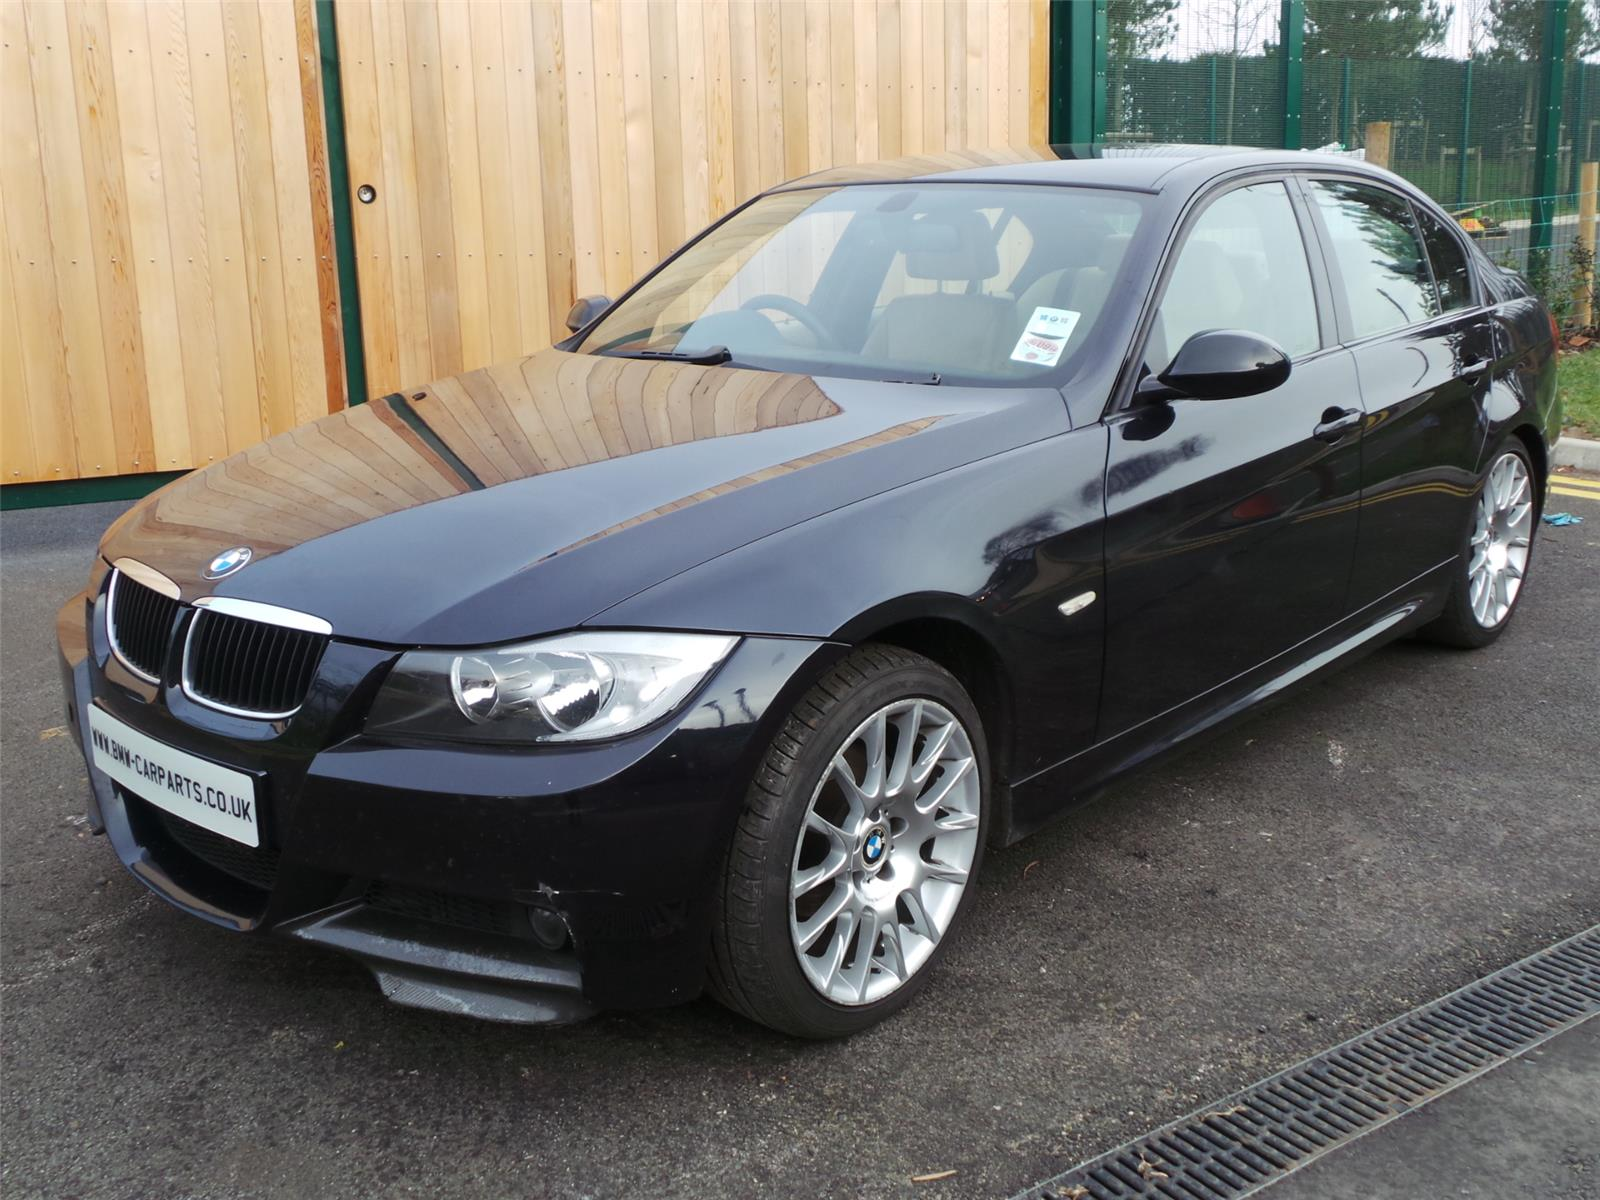 2006 bmw 3 series 320si 4 door saloon petrol manual. Black Bedroom Furniture Sets. Home Design Ideas